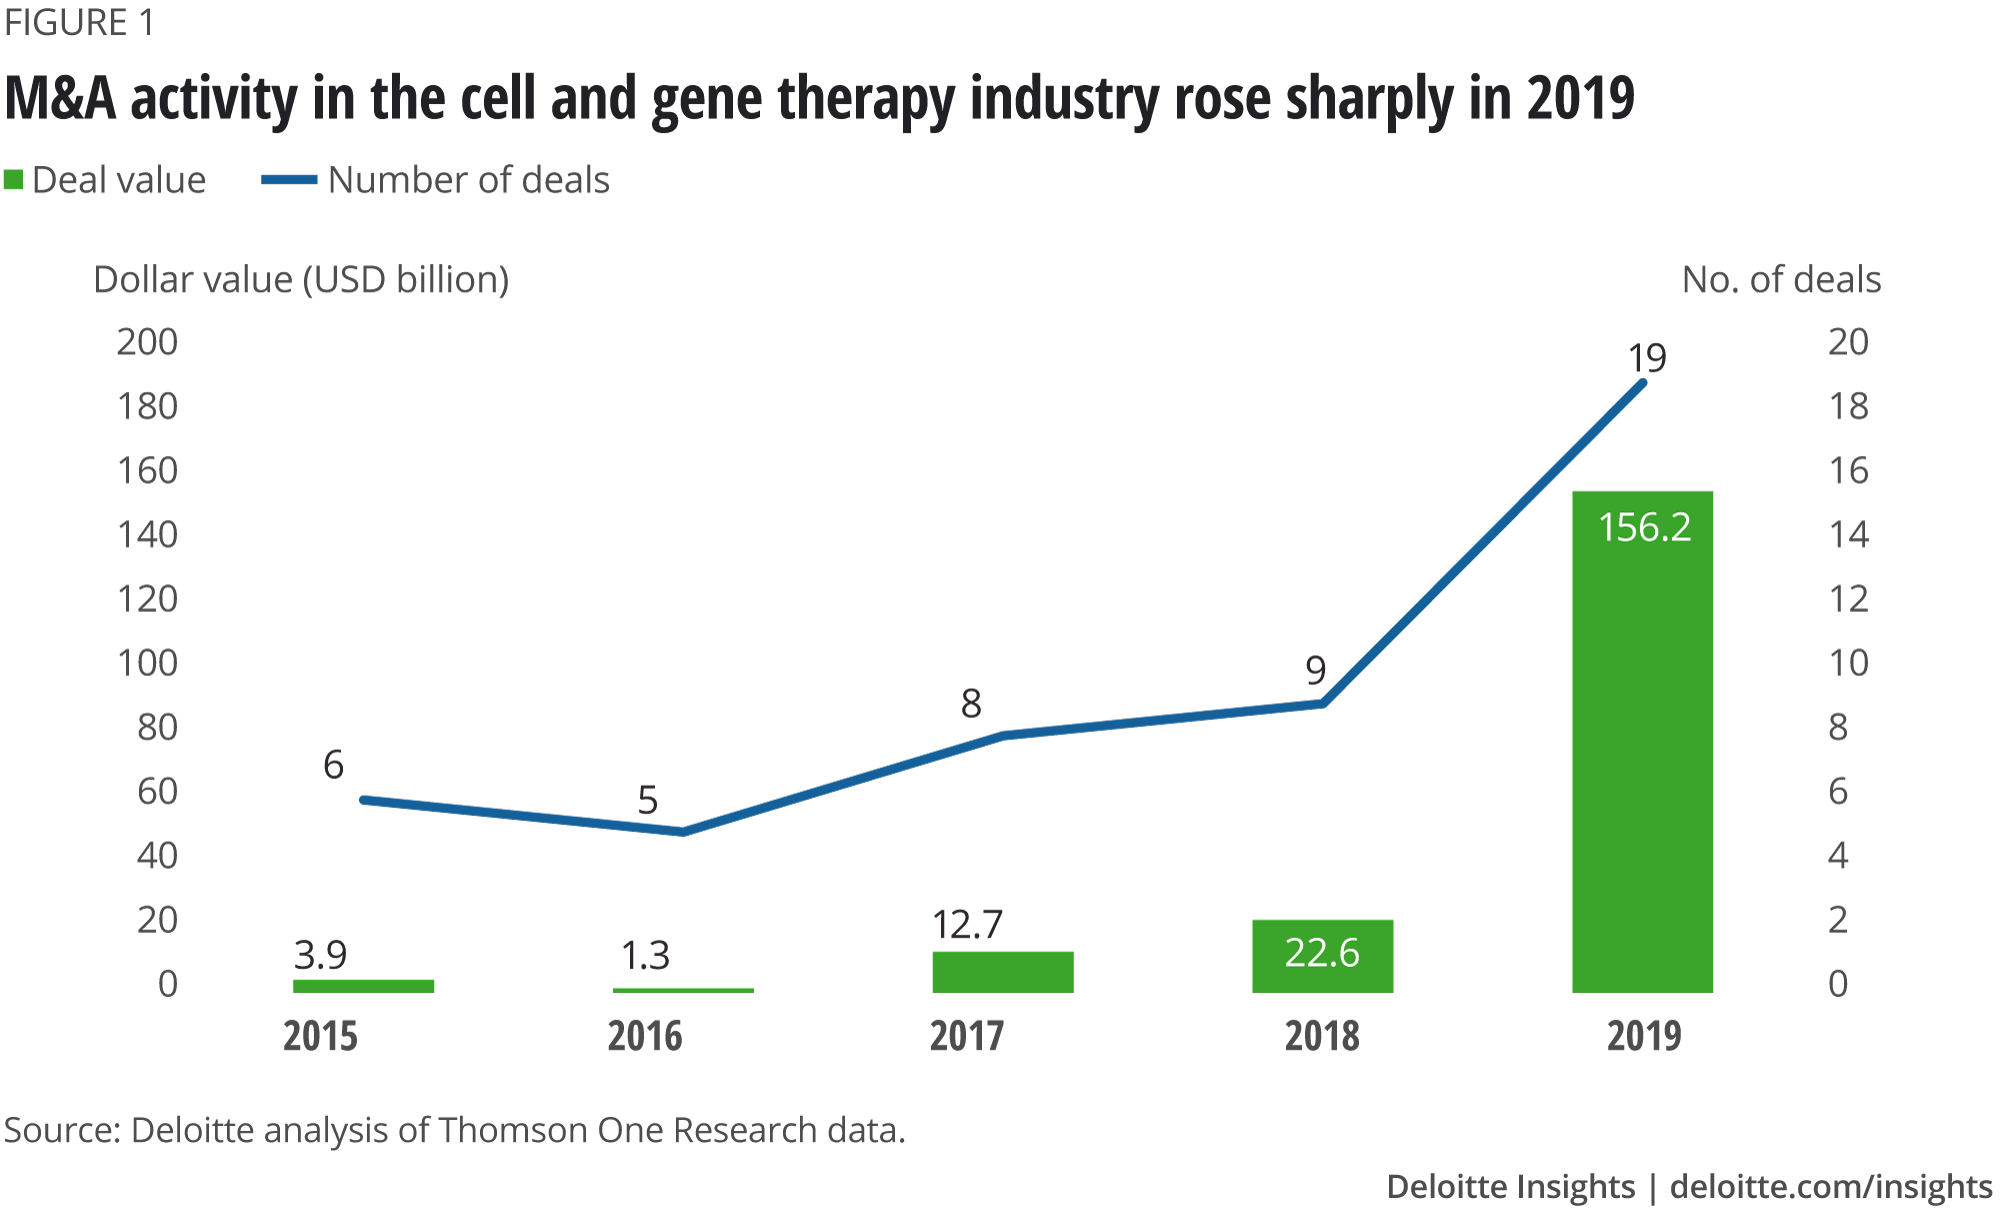 M&A activity in the cell and gene therapy industry rose sharply in 2019